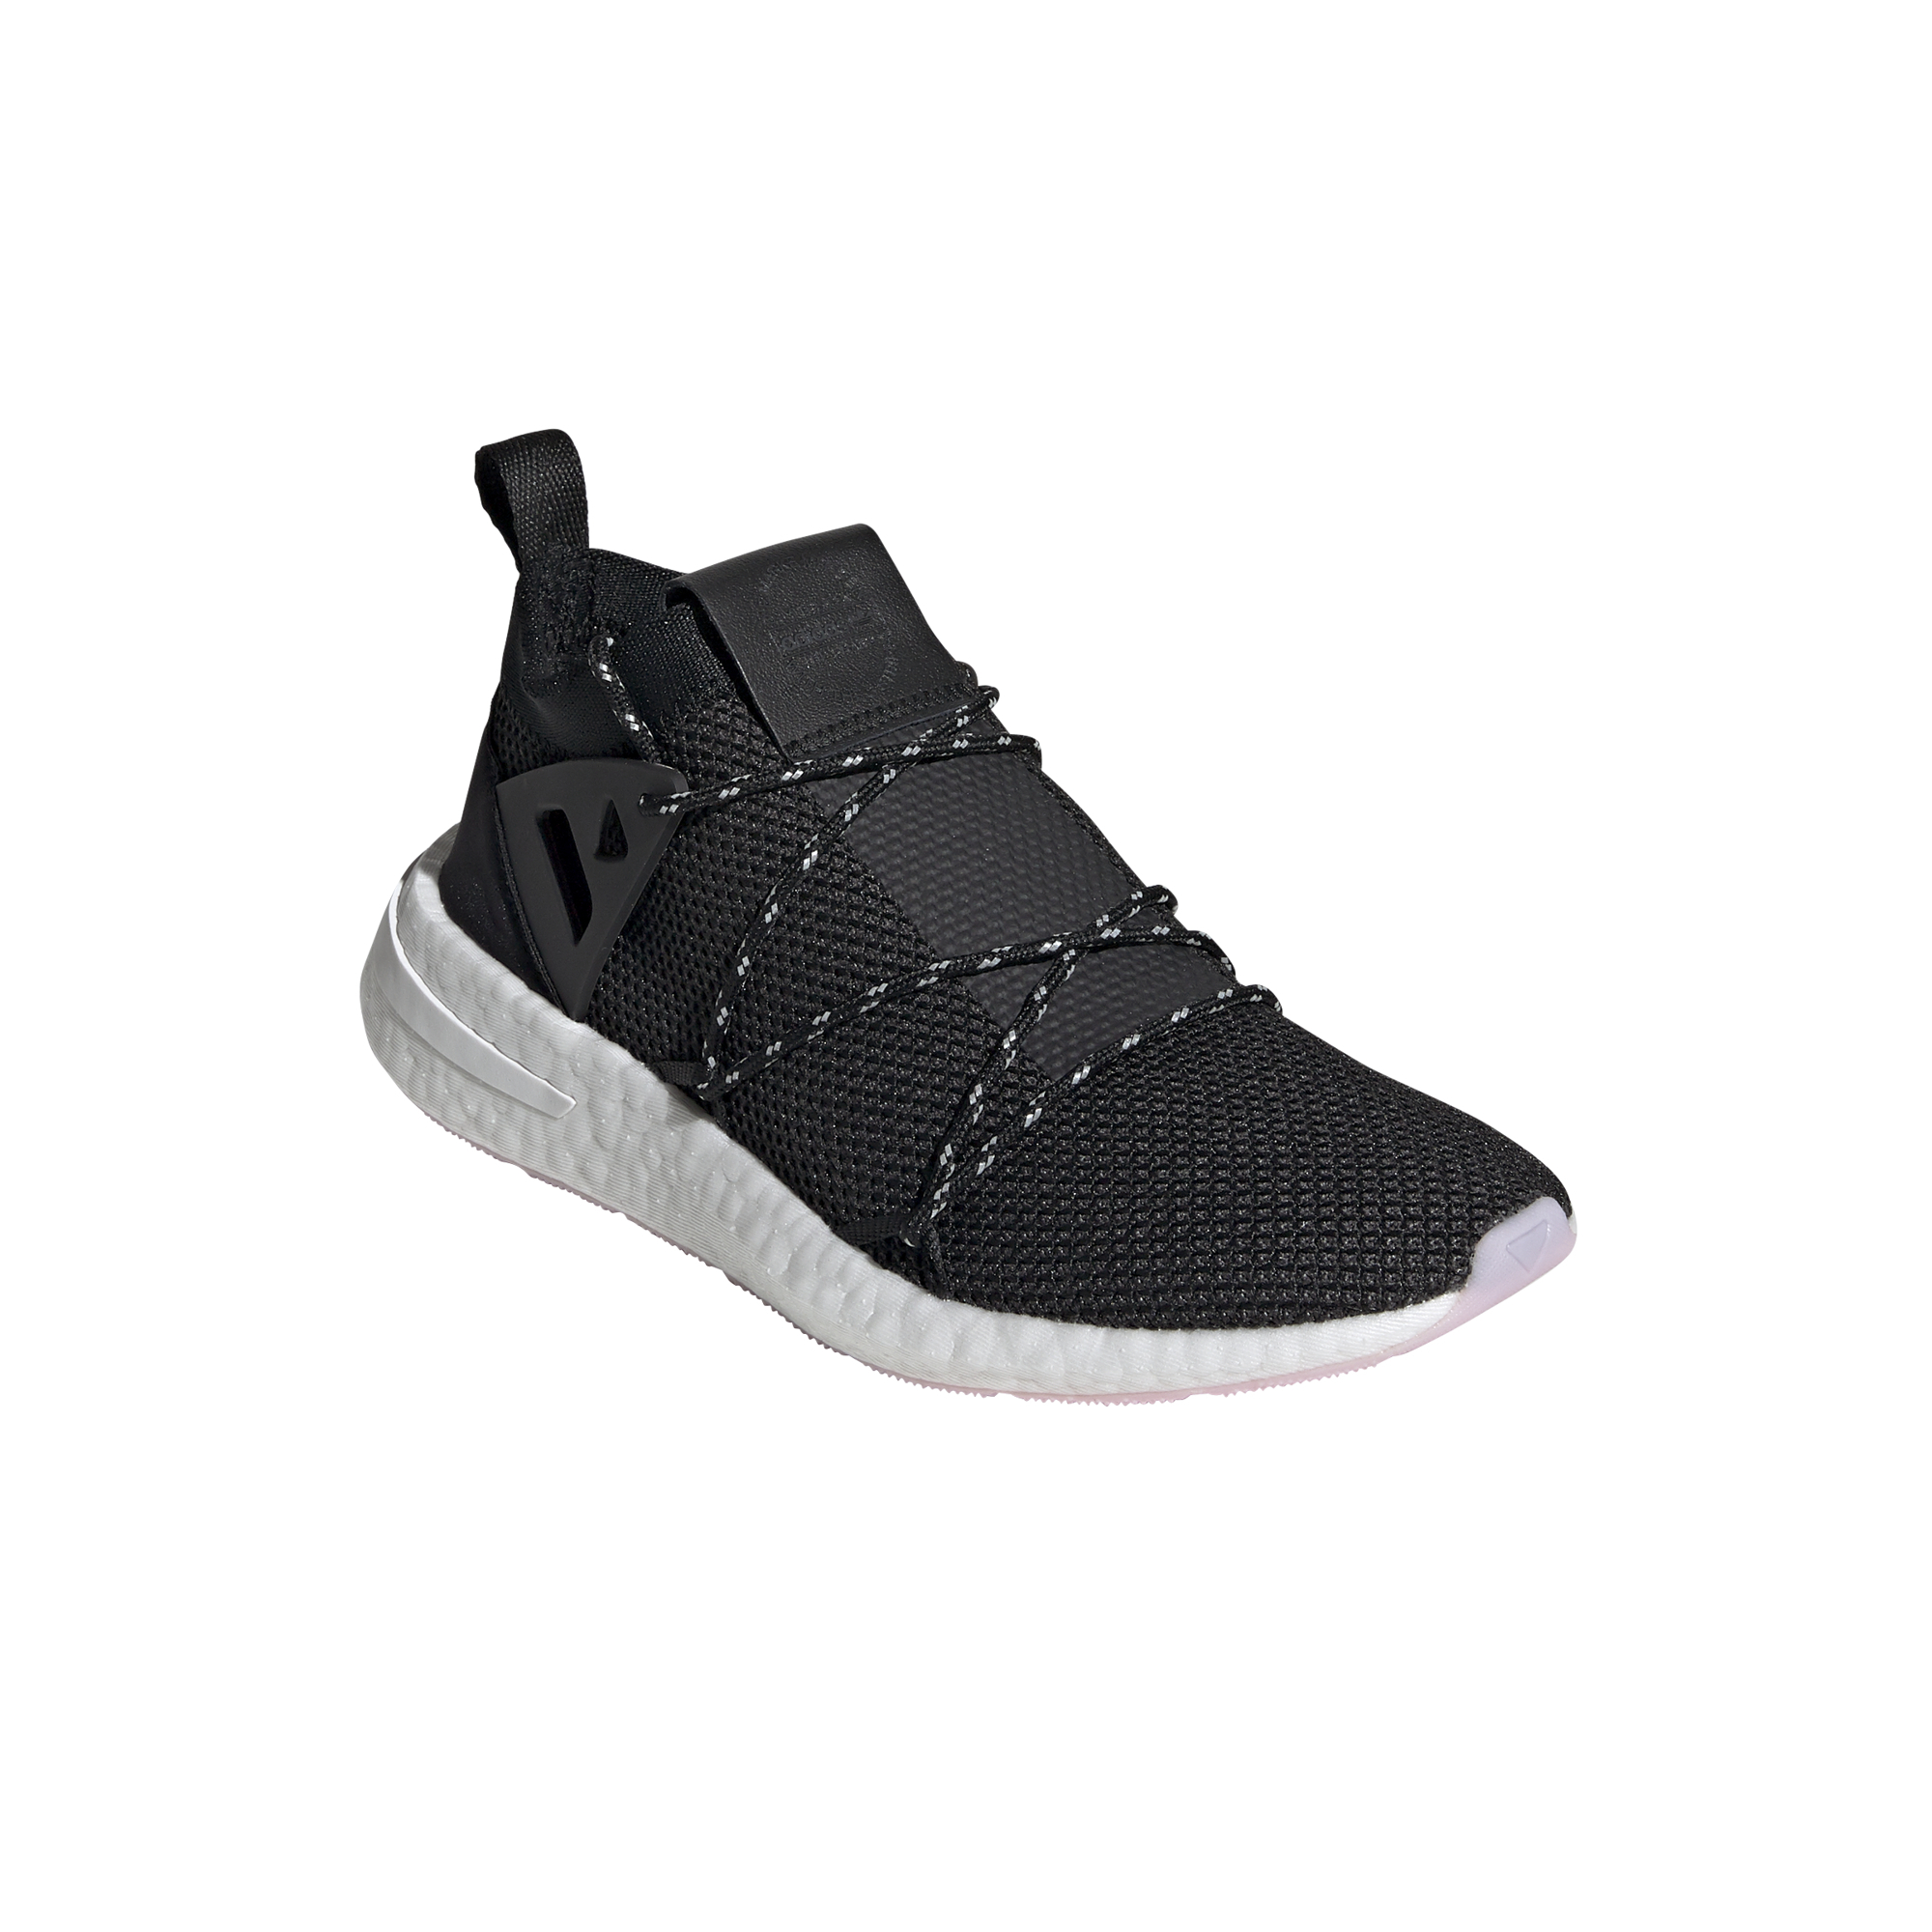 Chaussures femme adidas Arkyn Knit